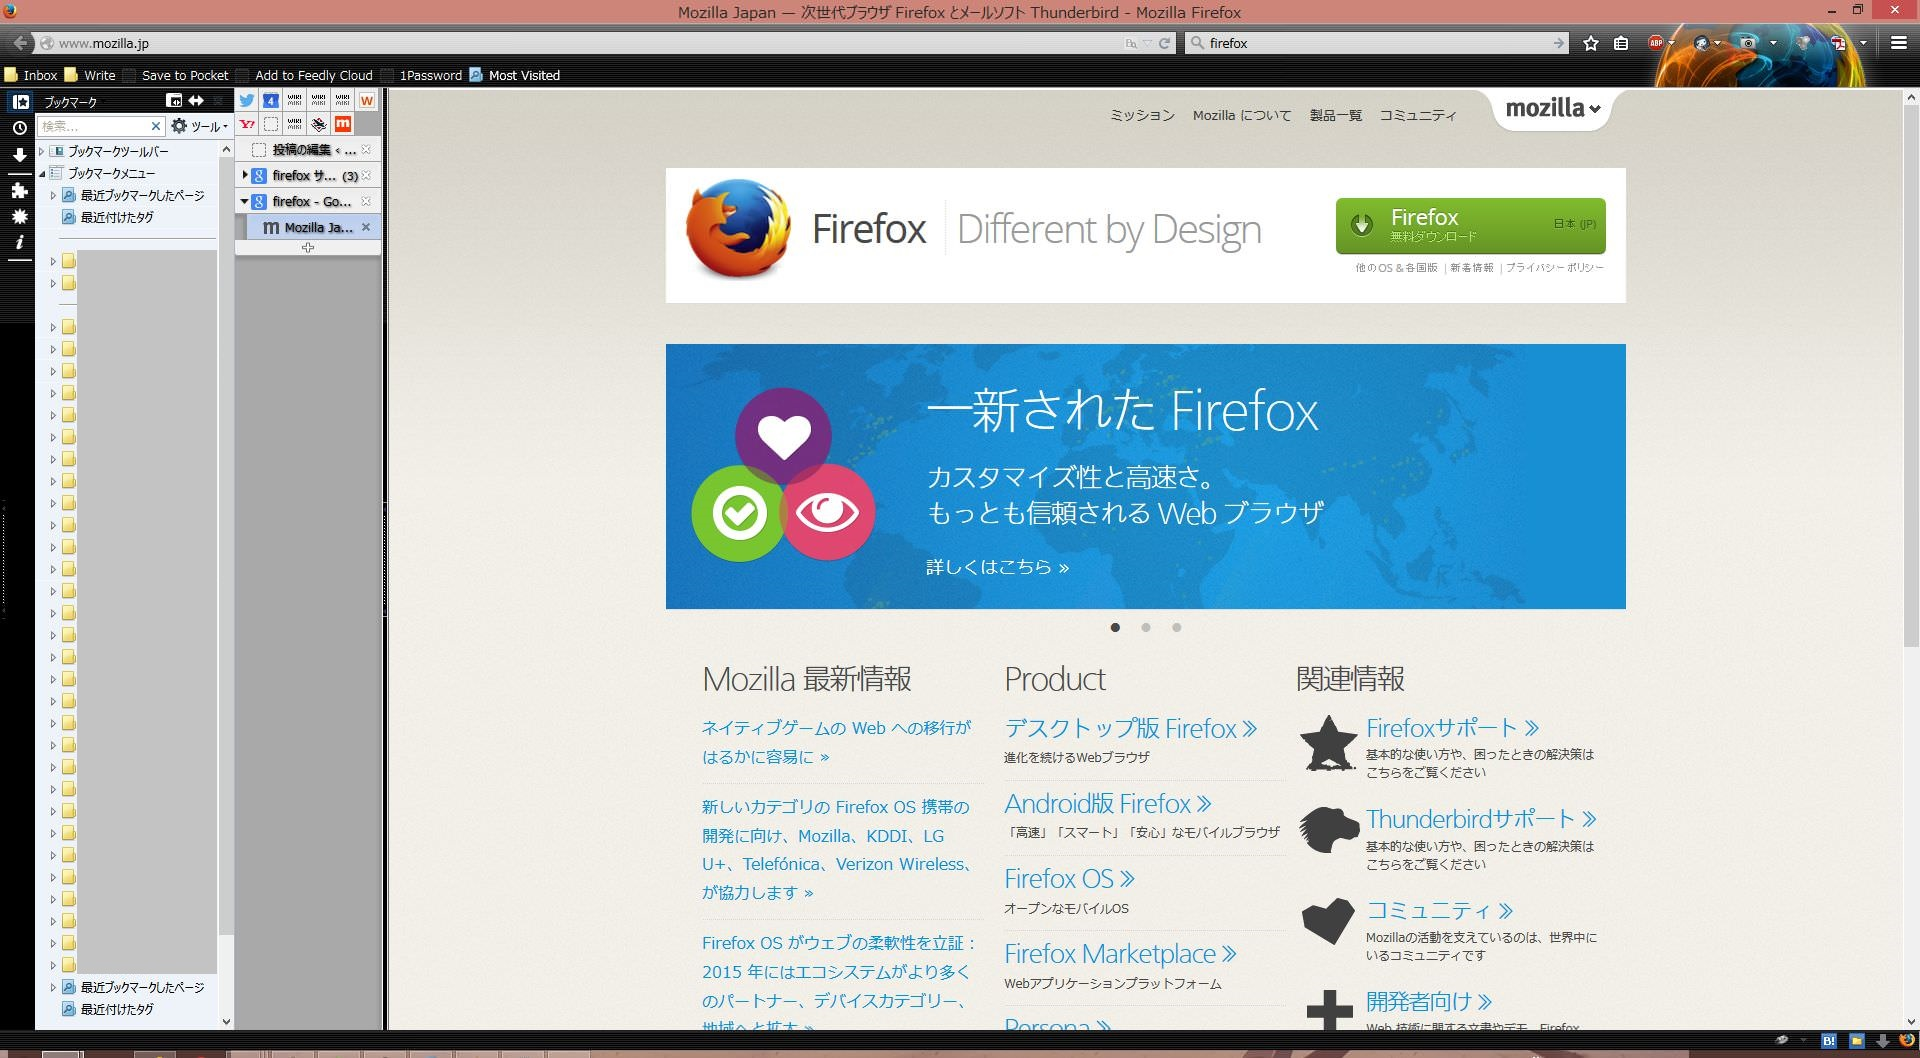 Firefox All-in-One sidebar 1